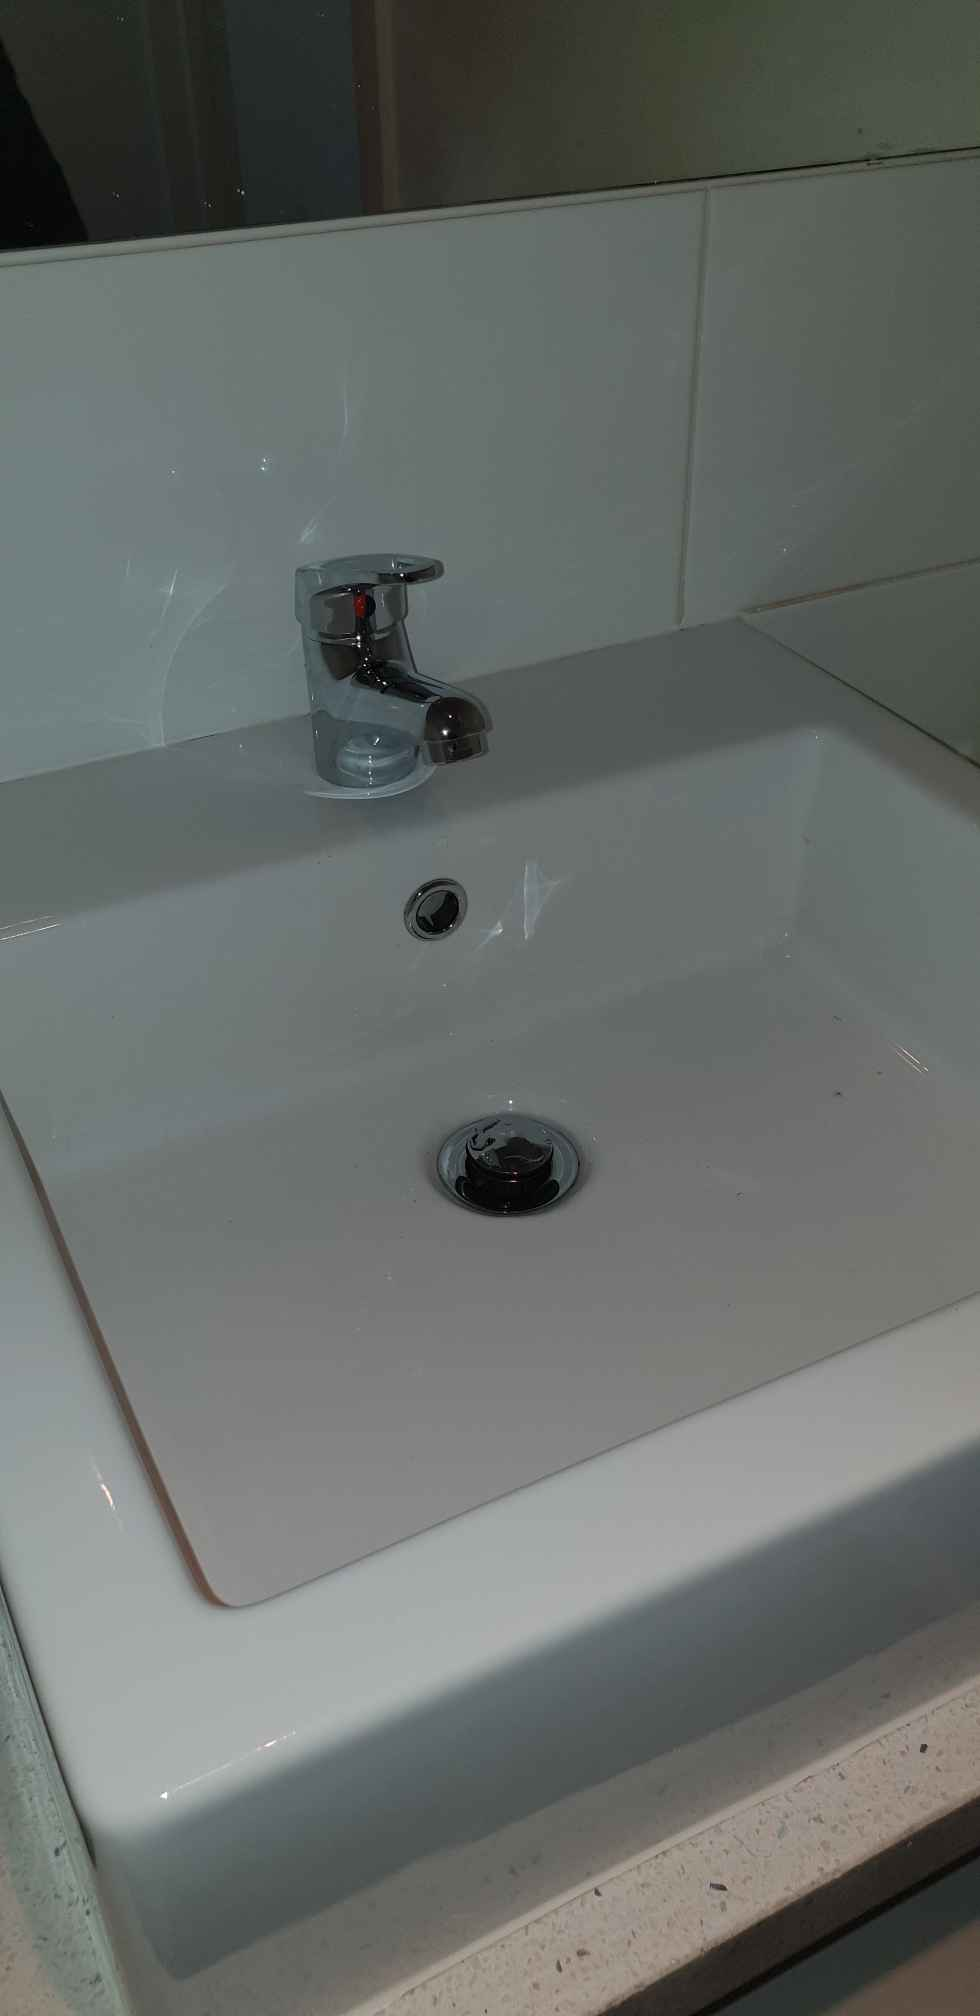 Leaking Taps and Toilet Repairs - Essendon Melbourne VIC By P.A.D Plumbing & Maintenance Pty Ltd via i4Tradies